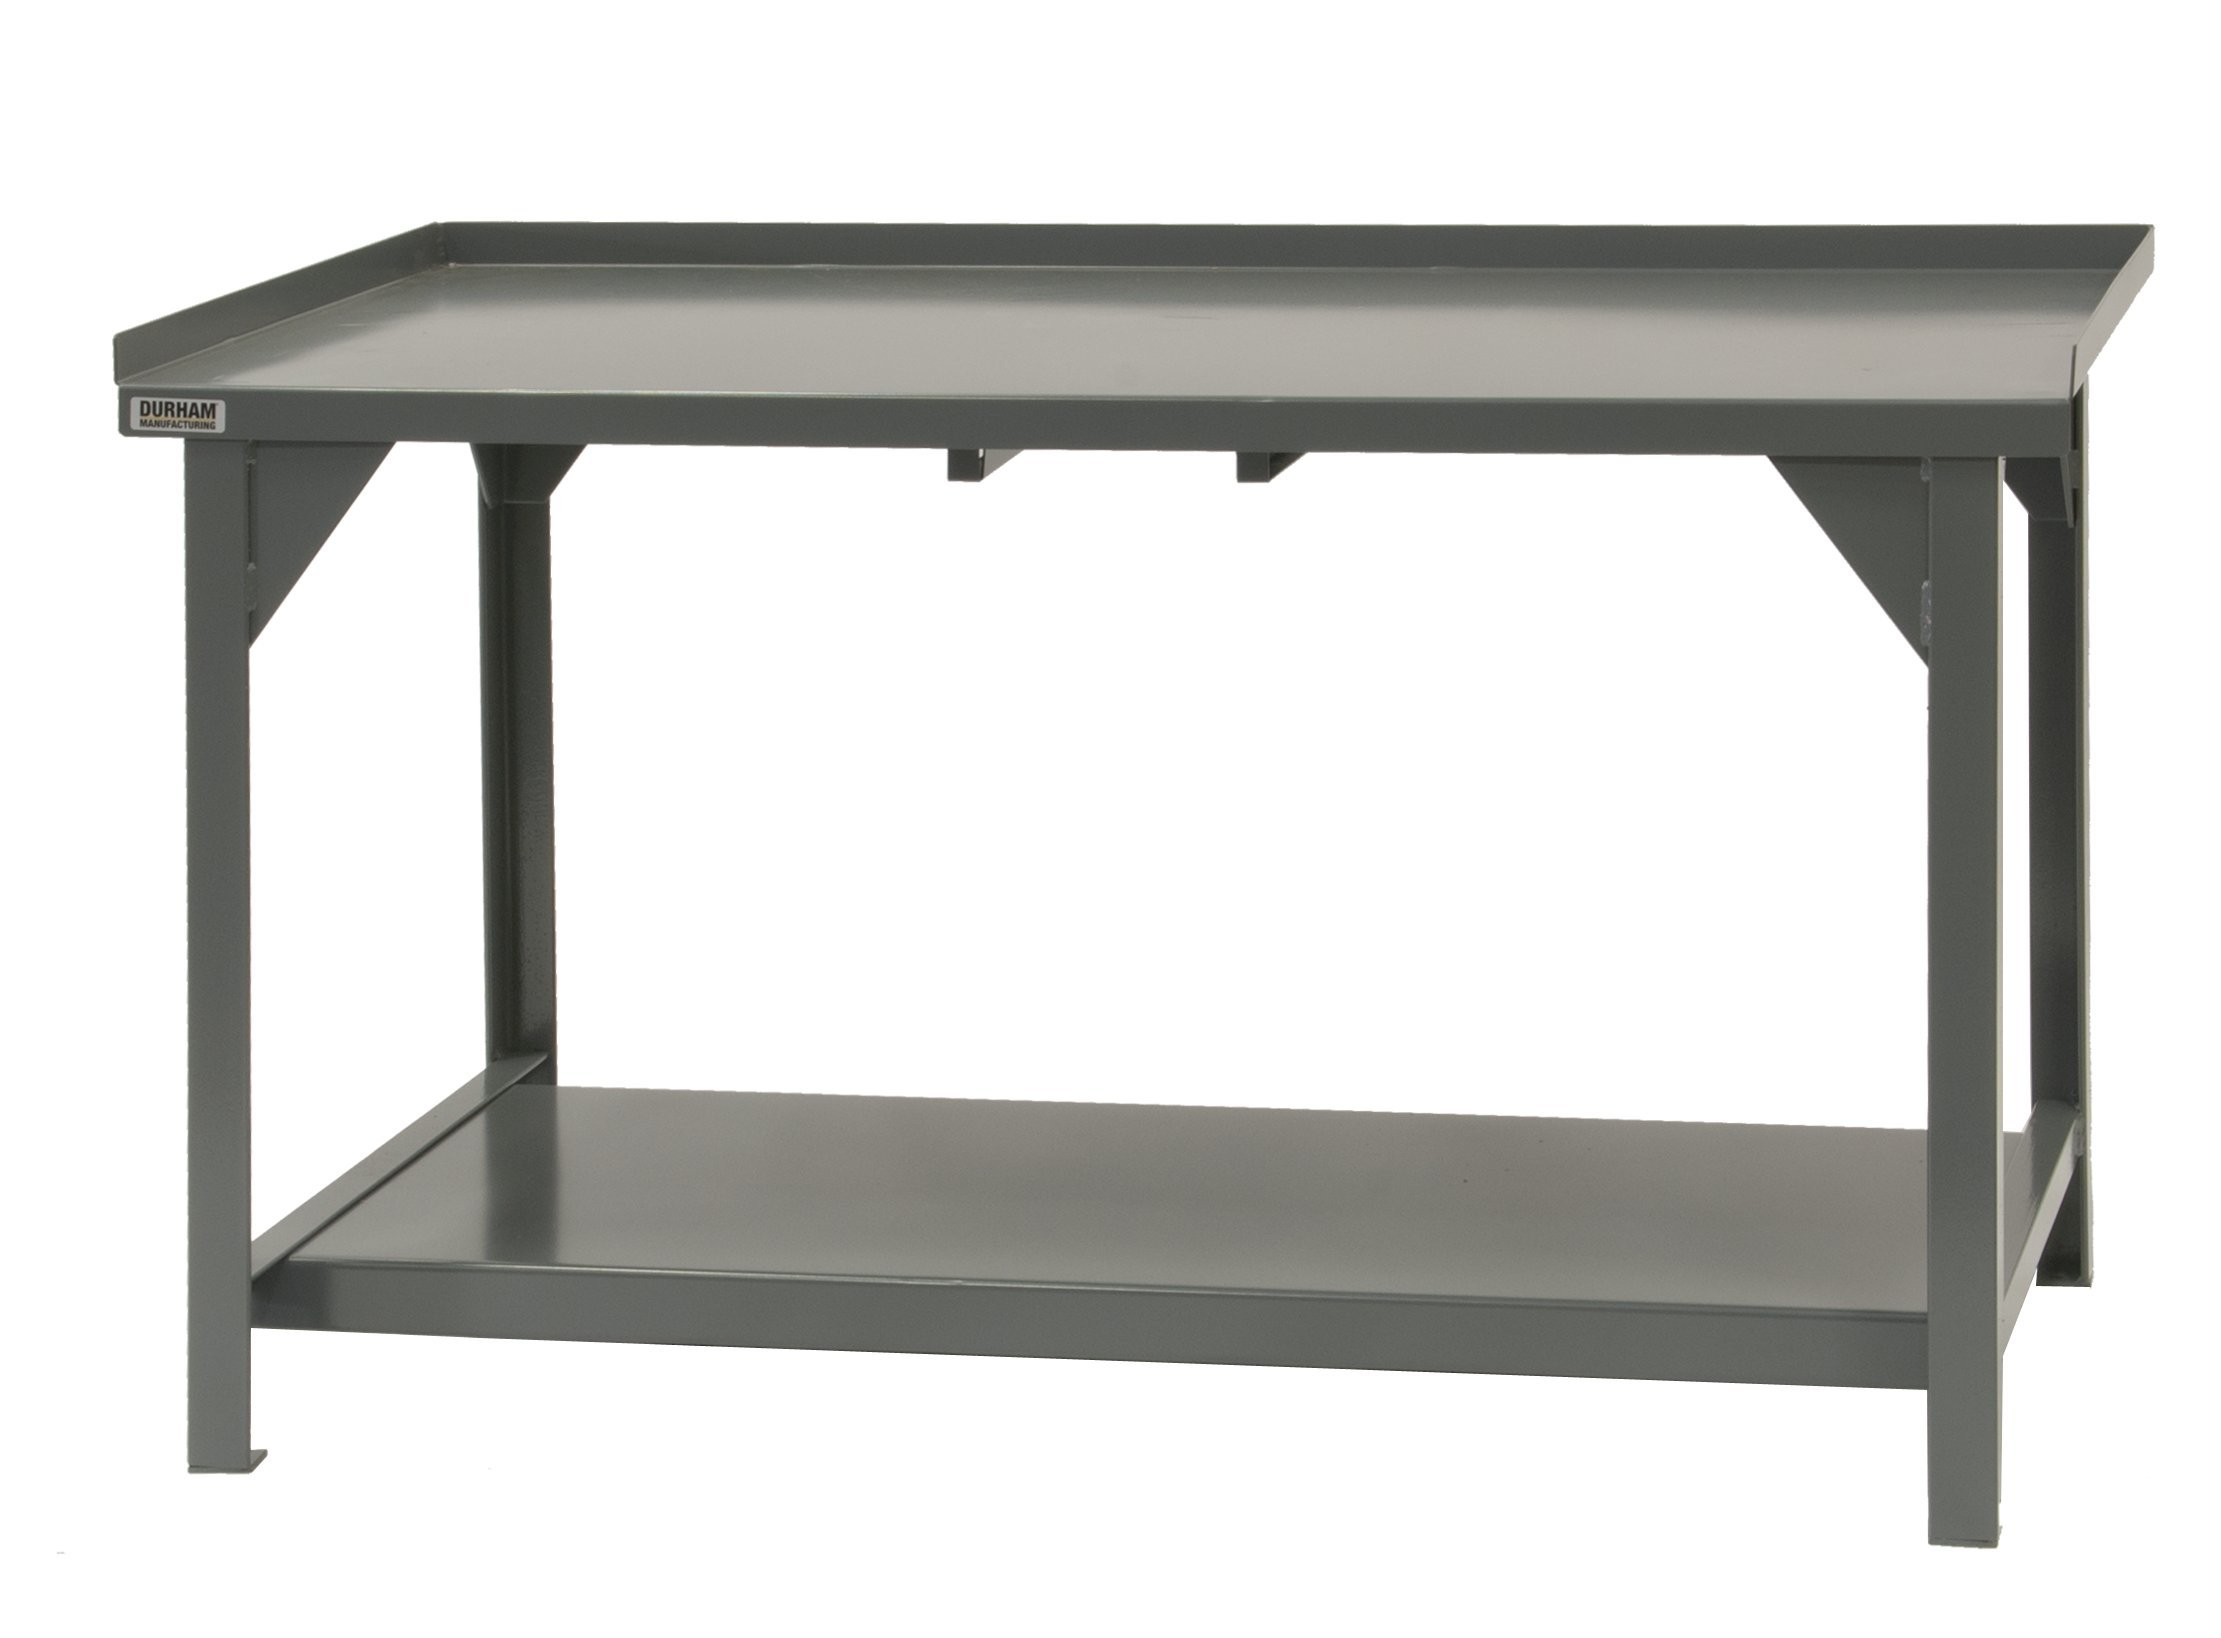 Durham Heavy Duty Steel/Iron Workbench with Back and End Stops, DWB-3072-BE-95, 4000 lbs Capacity, 30'' Length x 72'' Width x 34'' Height